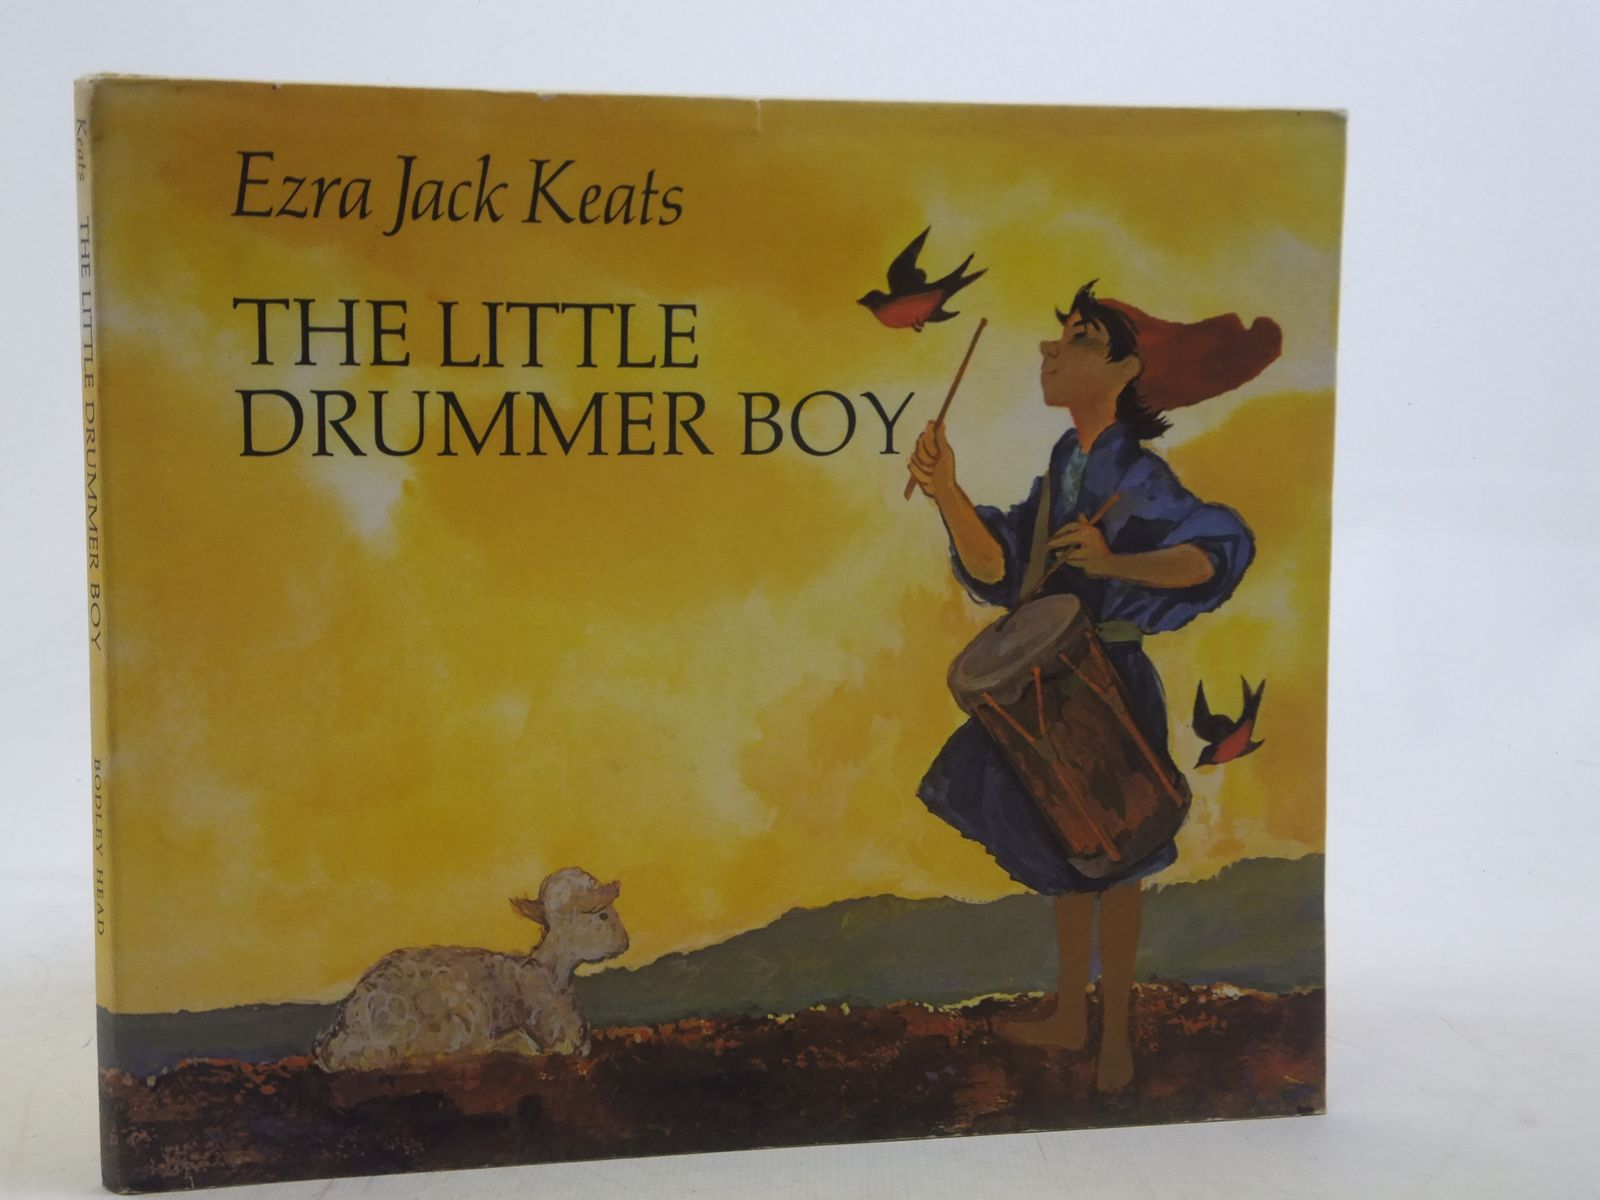 Photo of THE LITTLE DRUMMER BOY written by Keats, Ezra Jack illustrated by Keats, Ezra Jack published by The Bodley Head (STOCK CODE: 1606062)  for sale by Stella & Rose's Books